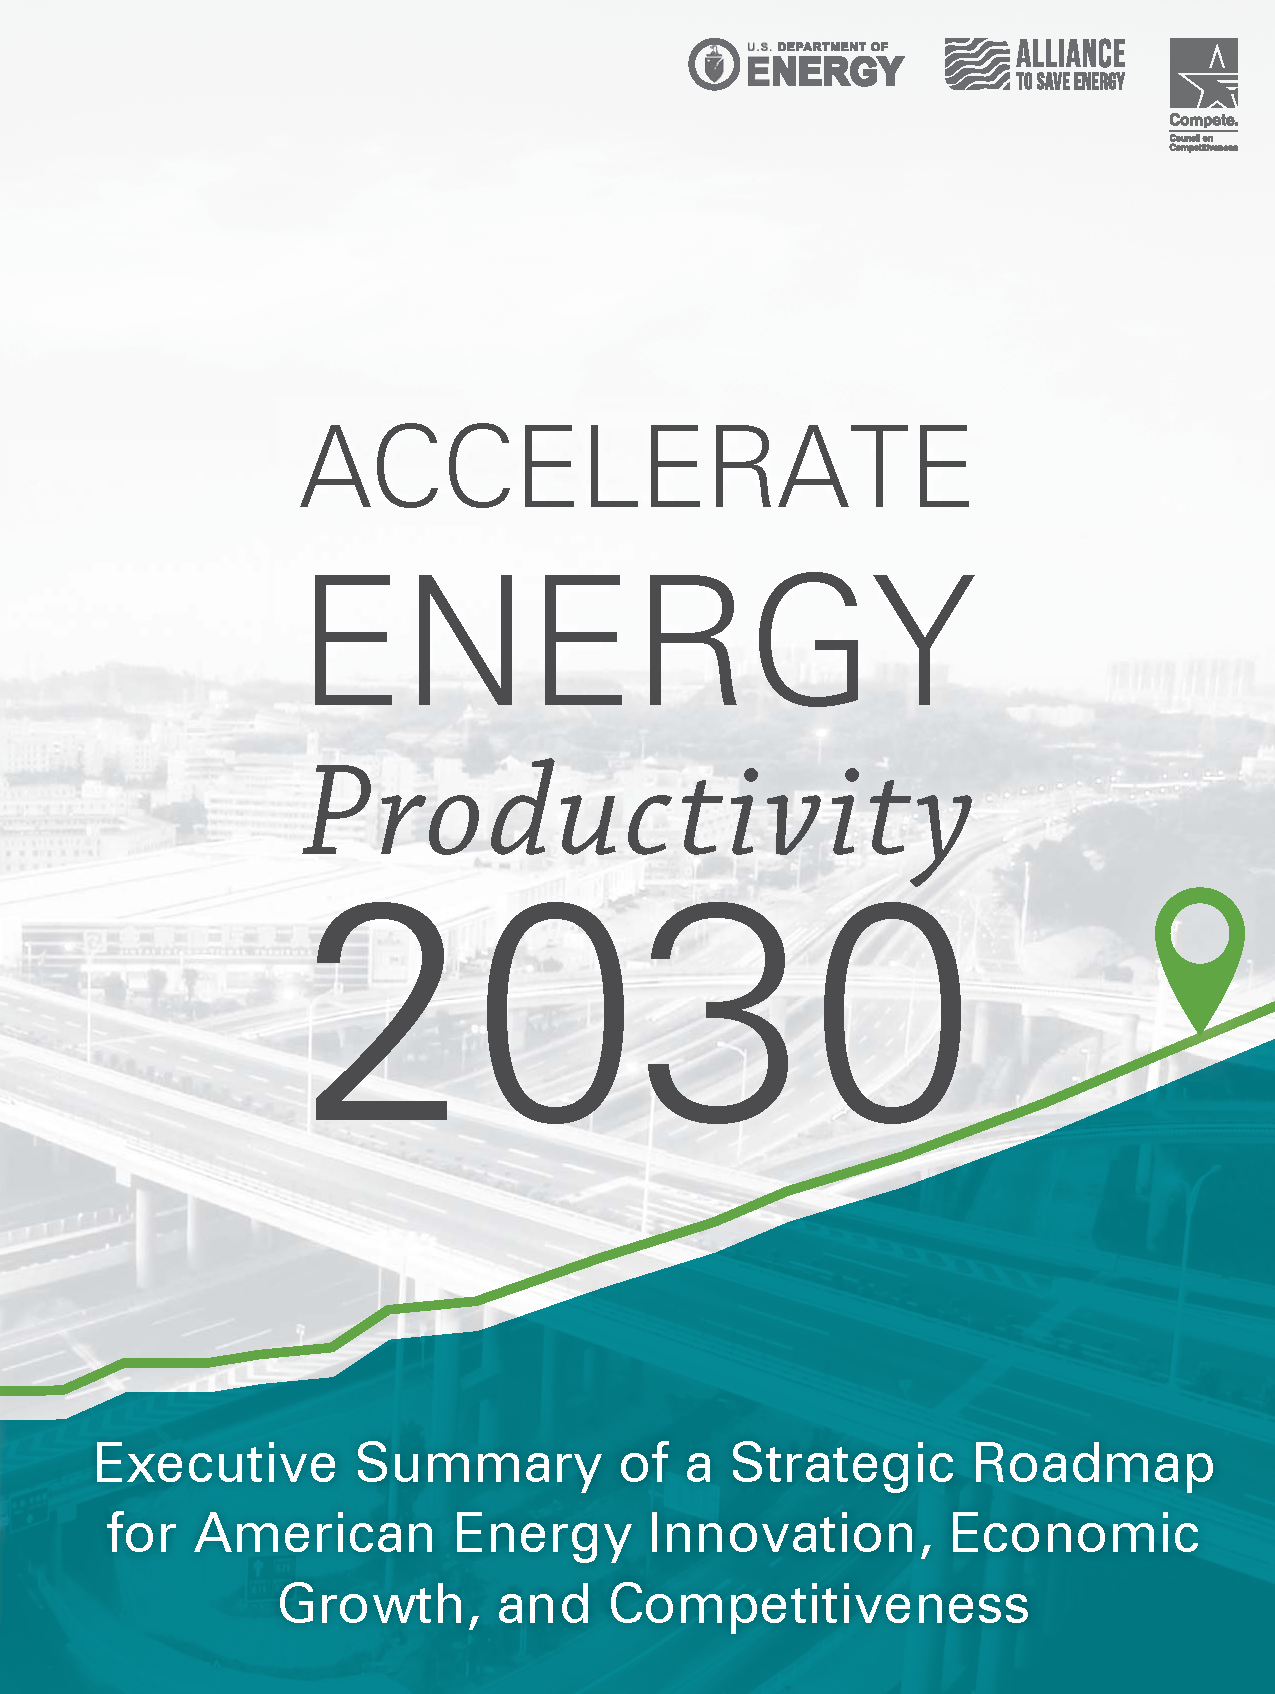 Accelerate Energy Productivity 2030 Executive Summary